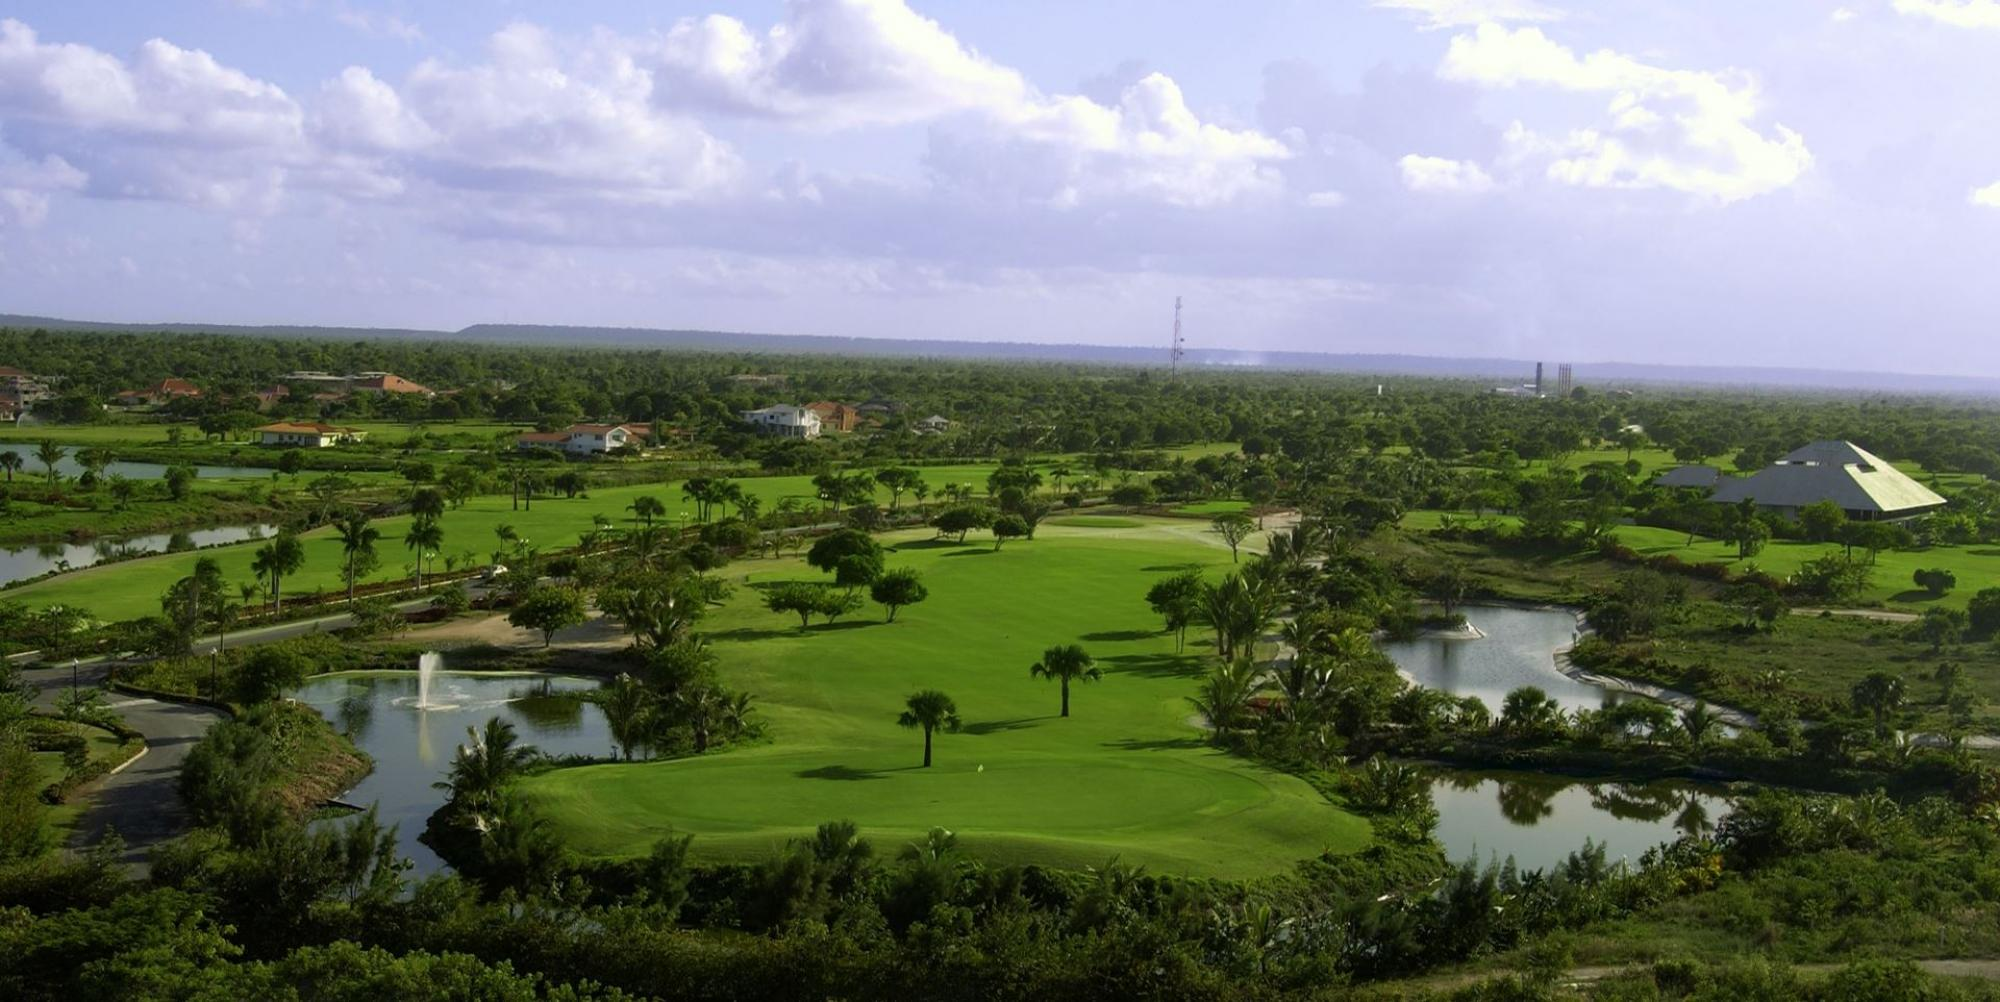 View Cocotal Golf and Country Club's lovely golf course in magnificent Dominican Republic.